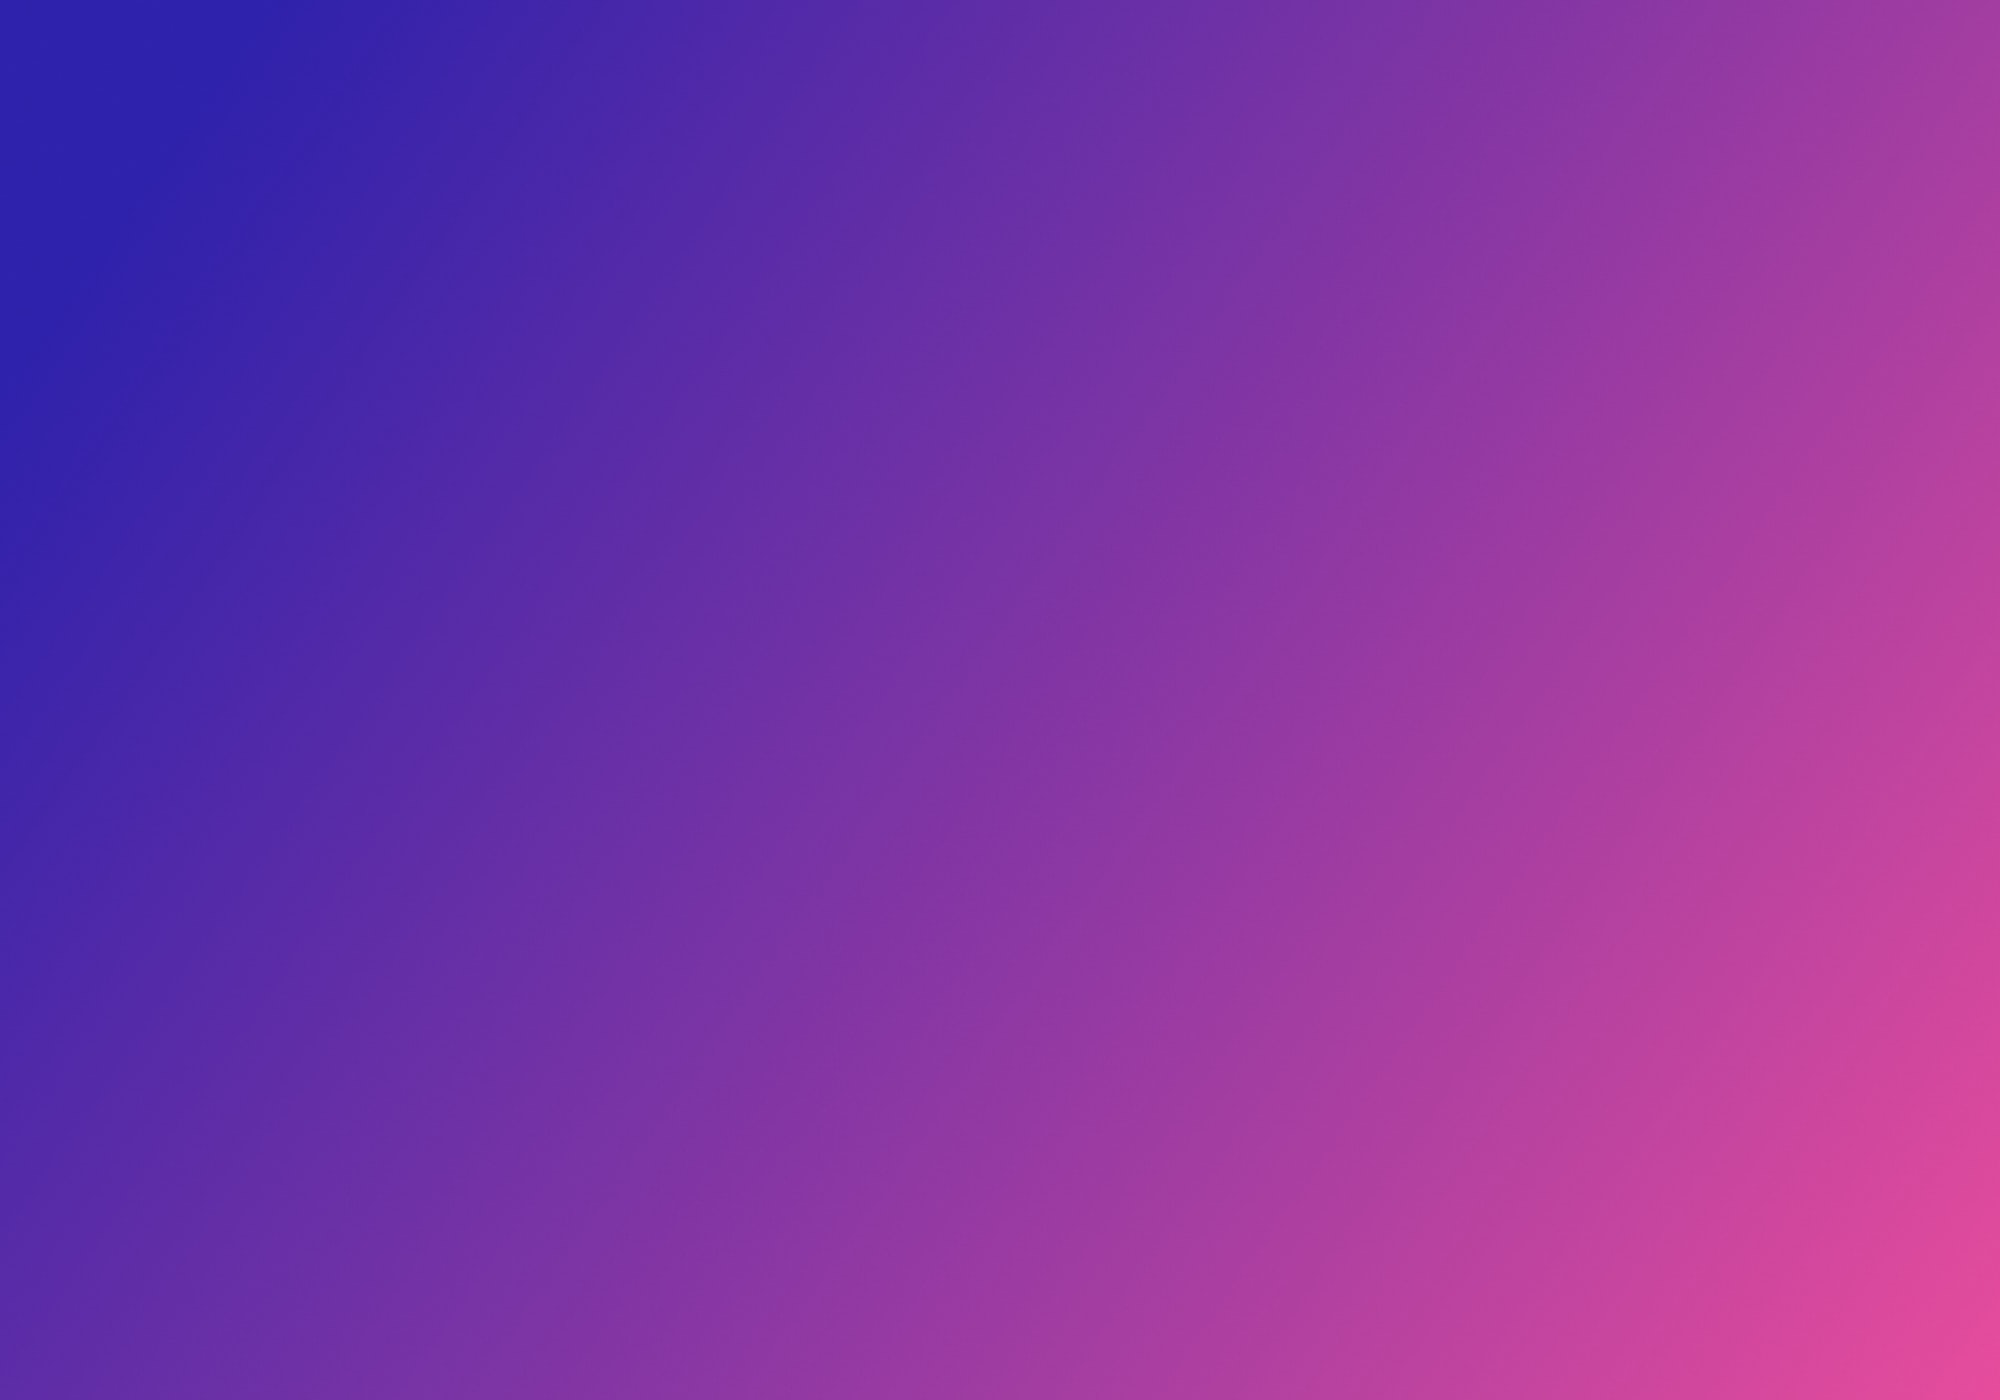 NSButton With A Gradient Background in Swift